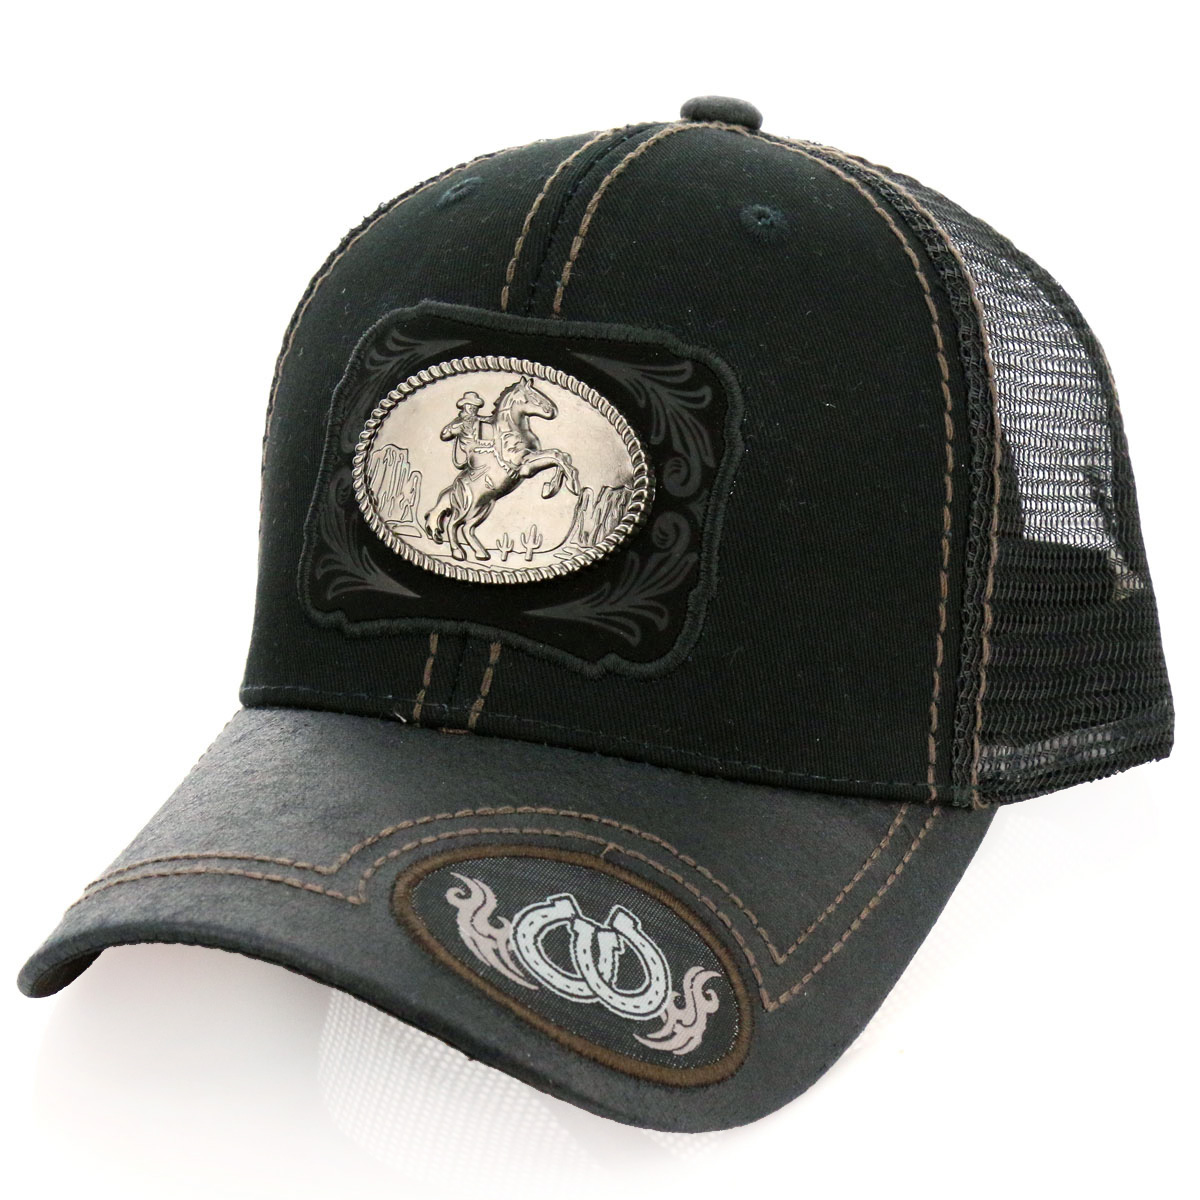 Pitbull Horse Riding Patch Metal Cotton Vintage Mesh Ball Cap-PB-113/BLK